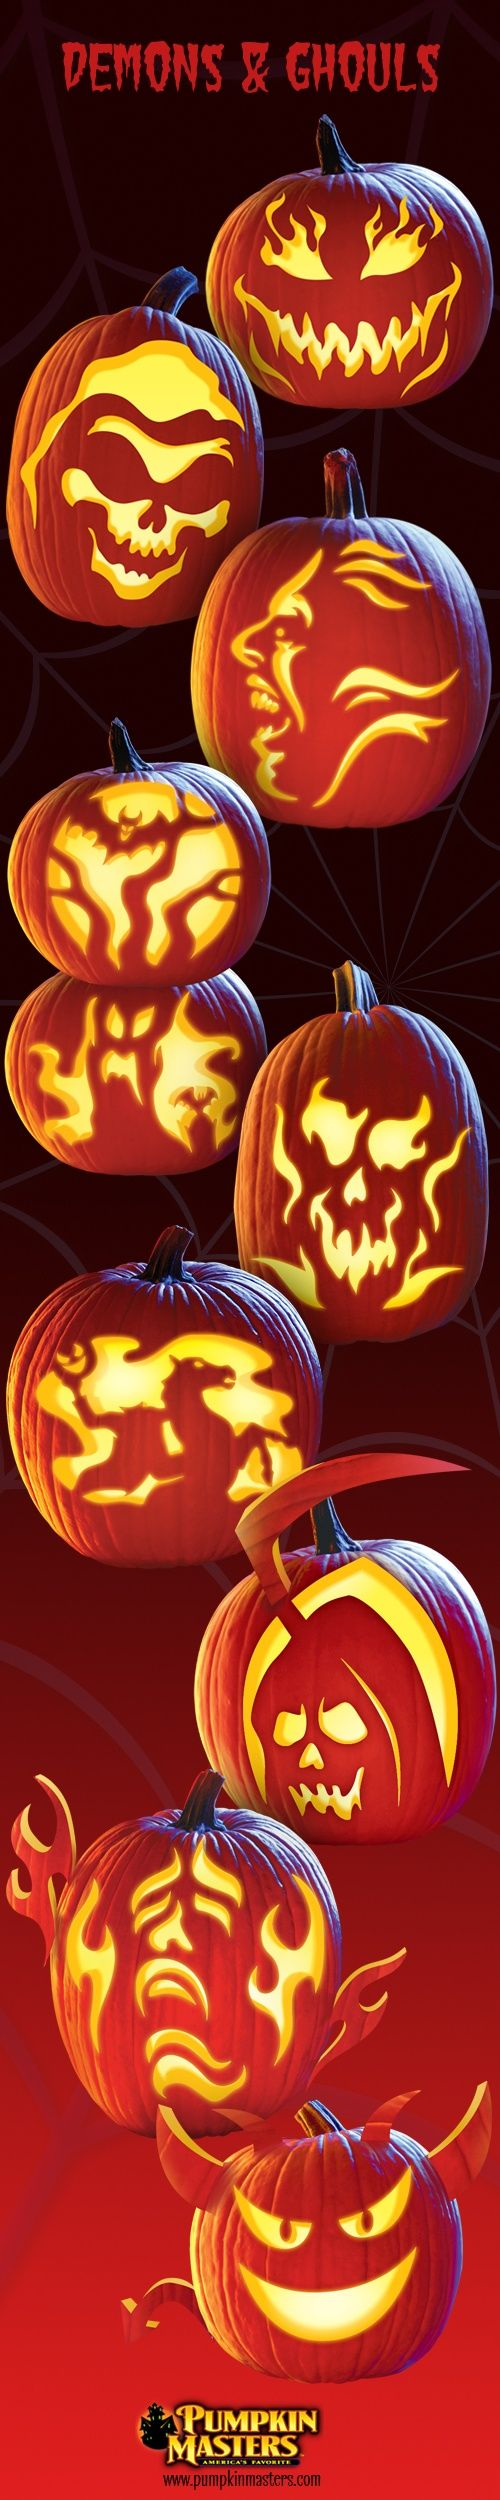 Best 20+ Scary pumpkin ideas on Pinterest | Scary pumpkin carving ...